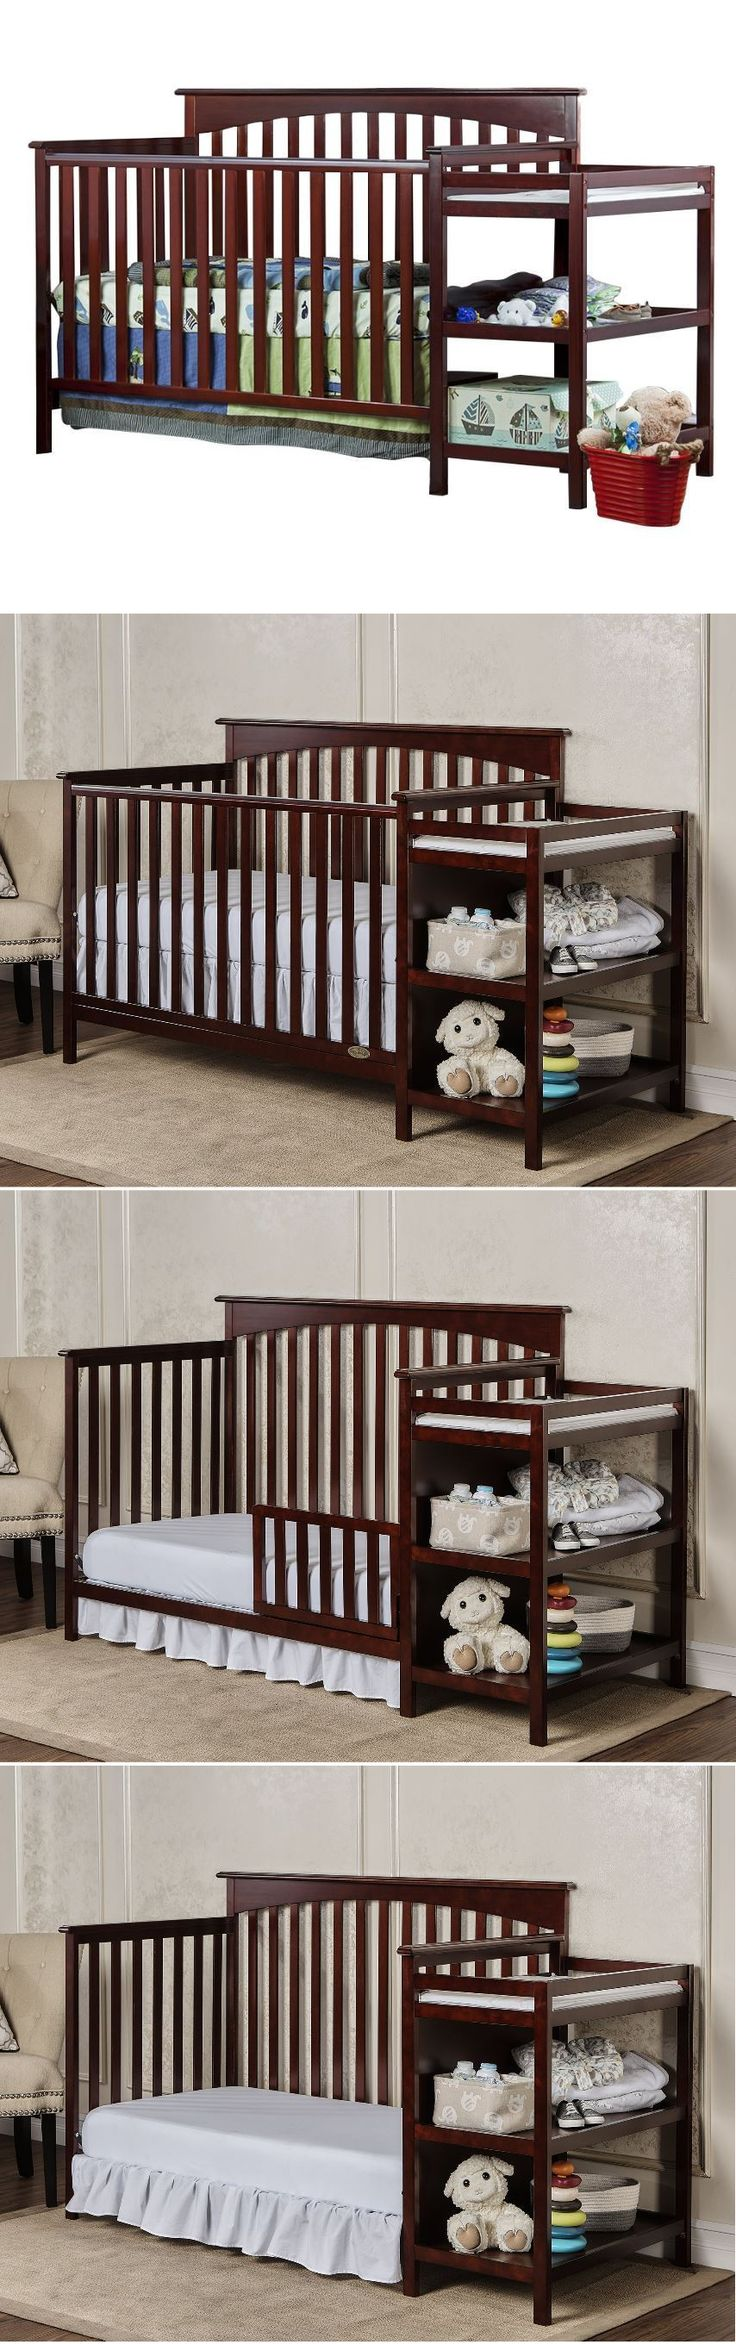 Brookfield fixed gate crib for sale -